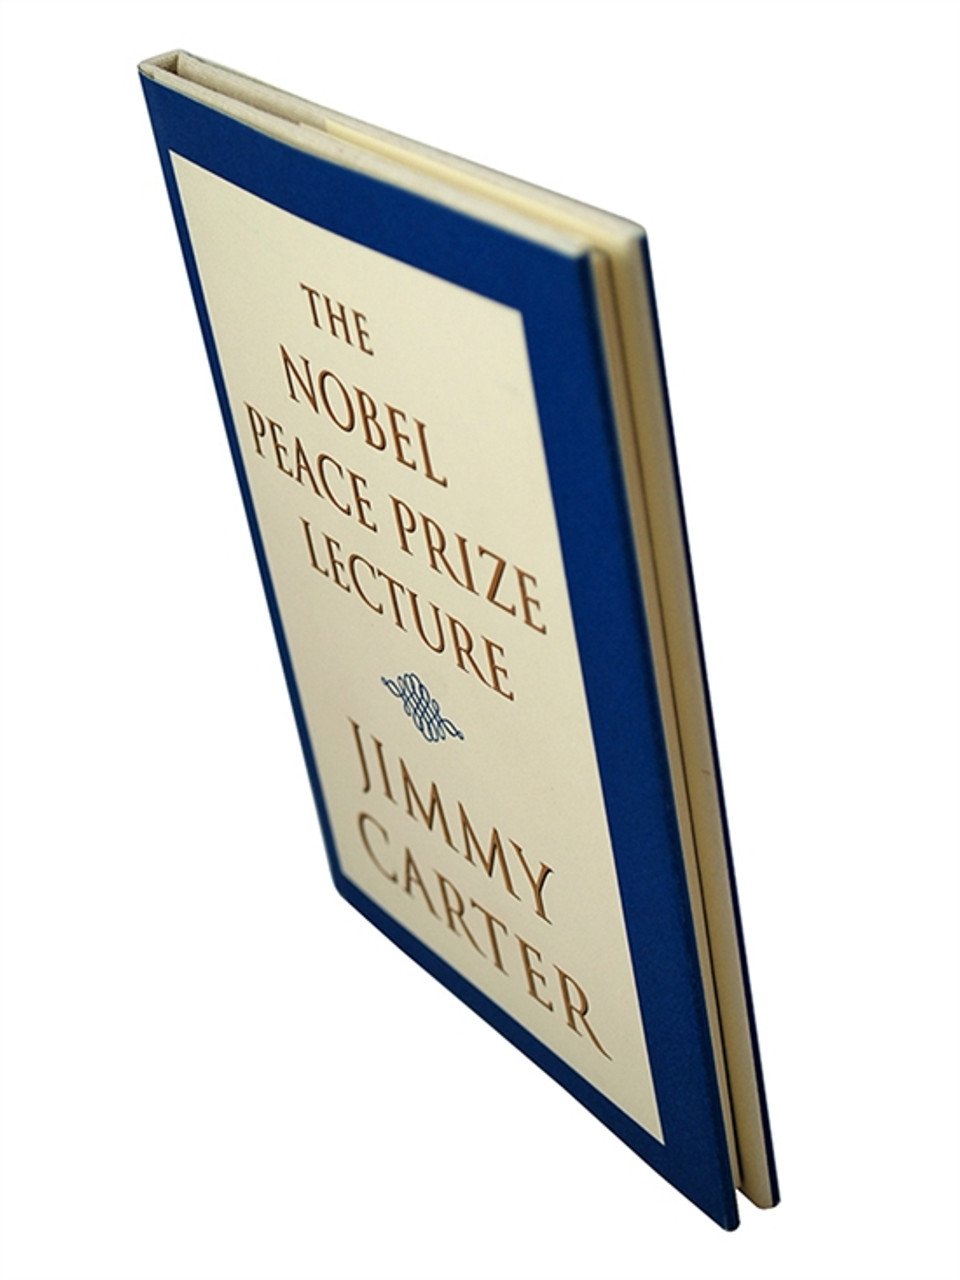 """Simon & Schuster """"The Nobel Peace Prize Lecture"""" Jimmy Carter, Signed First Edition HC/dj [Very Fine]"""